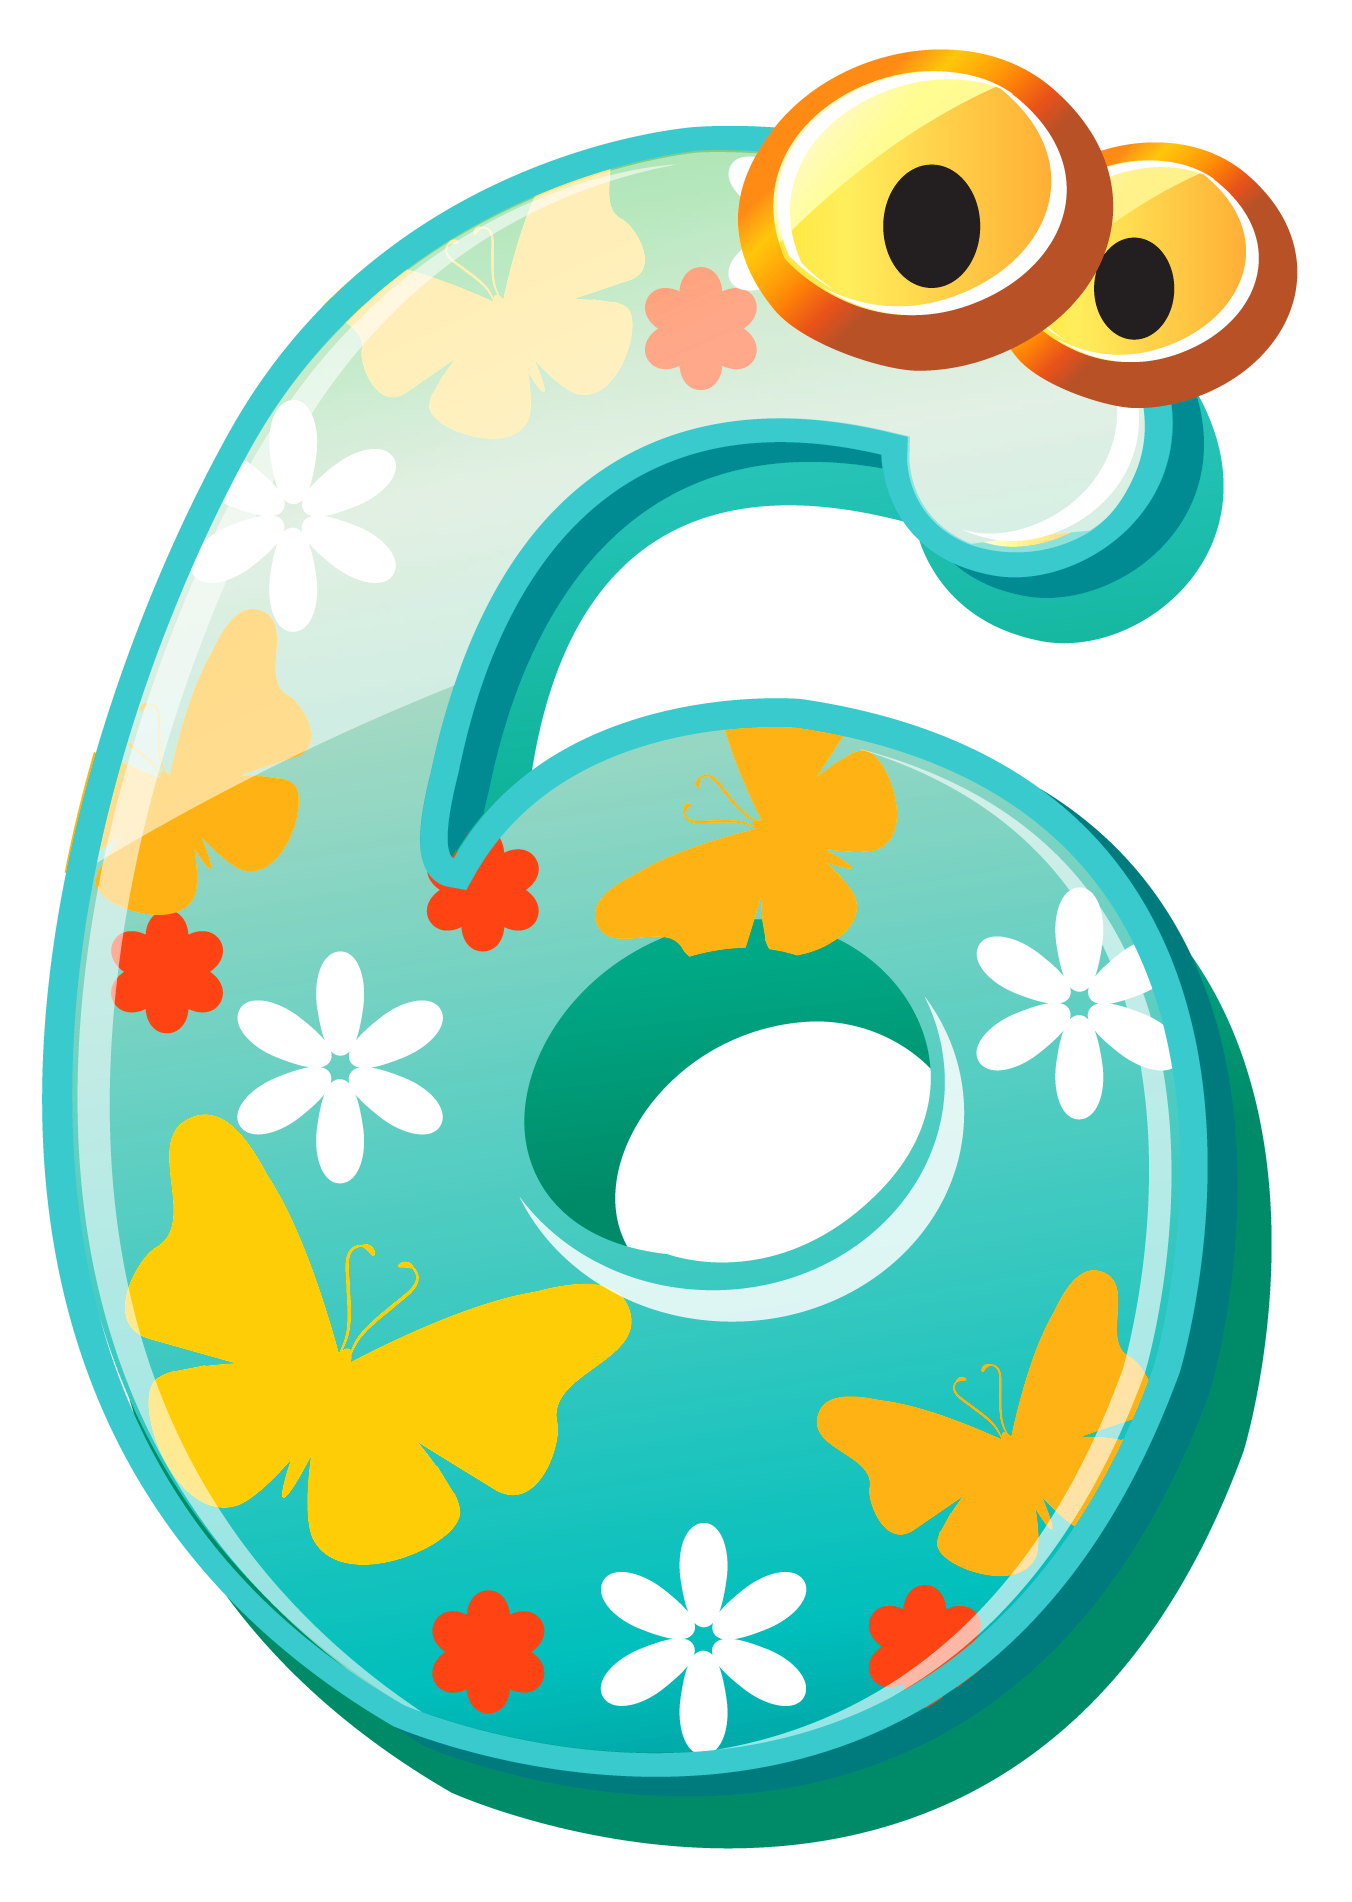 Numbers Clip Art Kids Free Clipart Images Image Letras